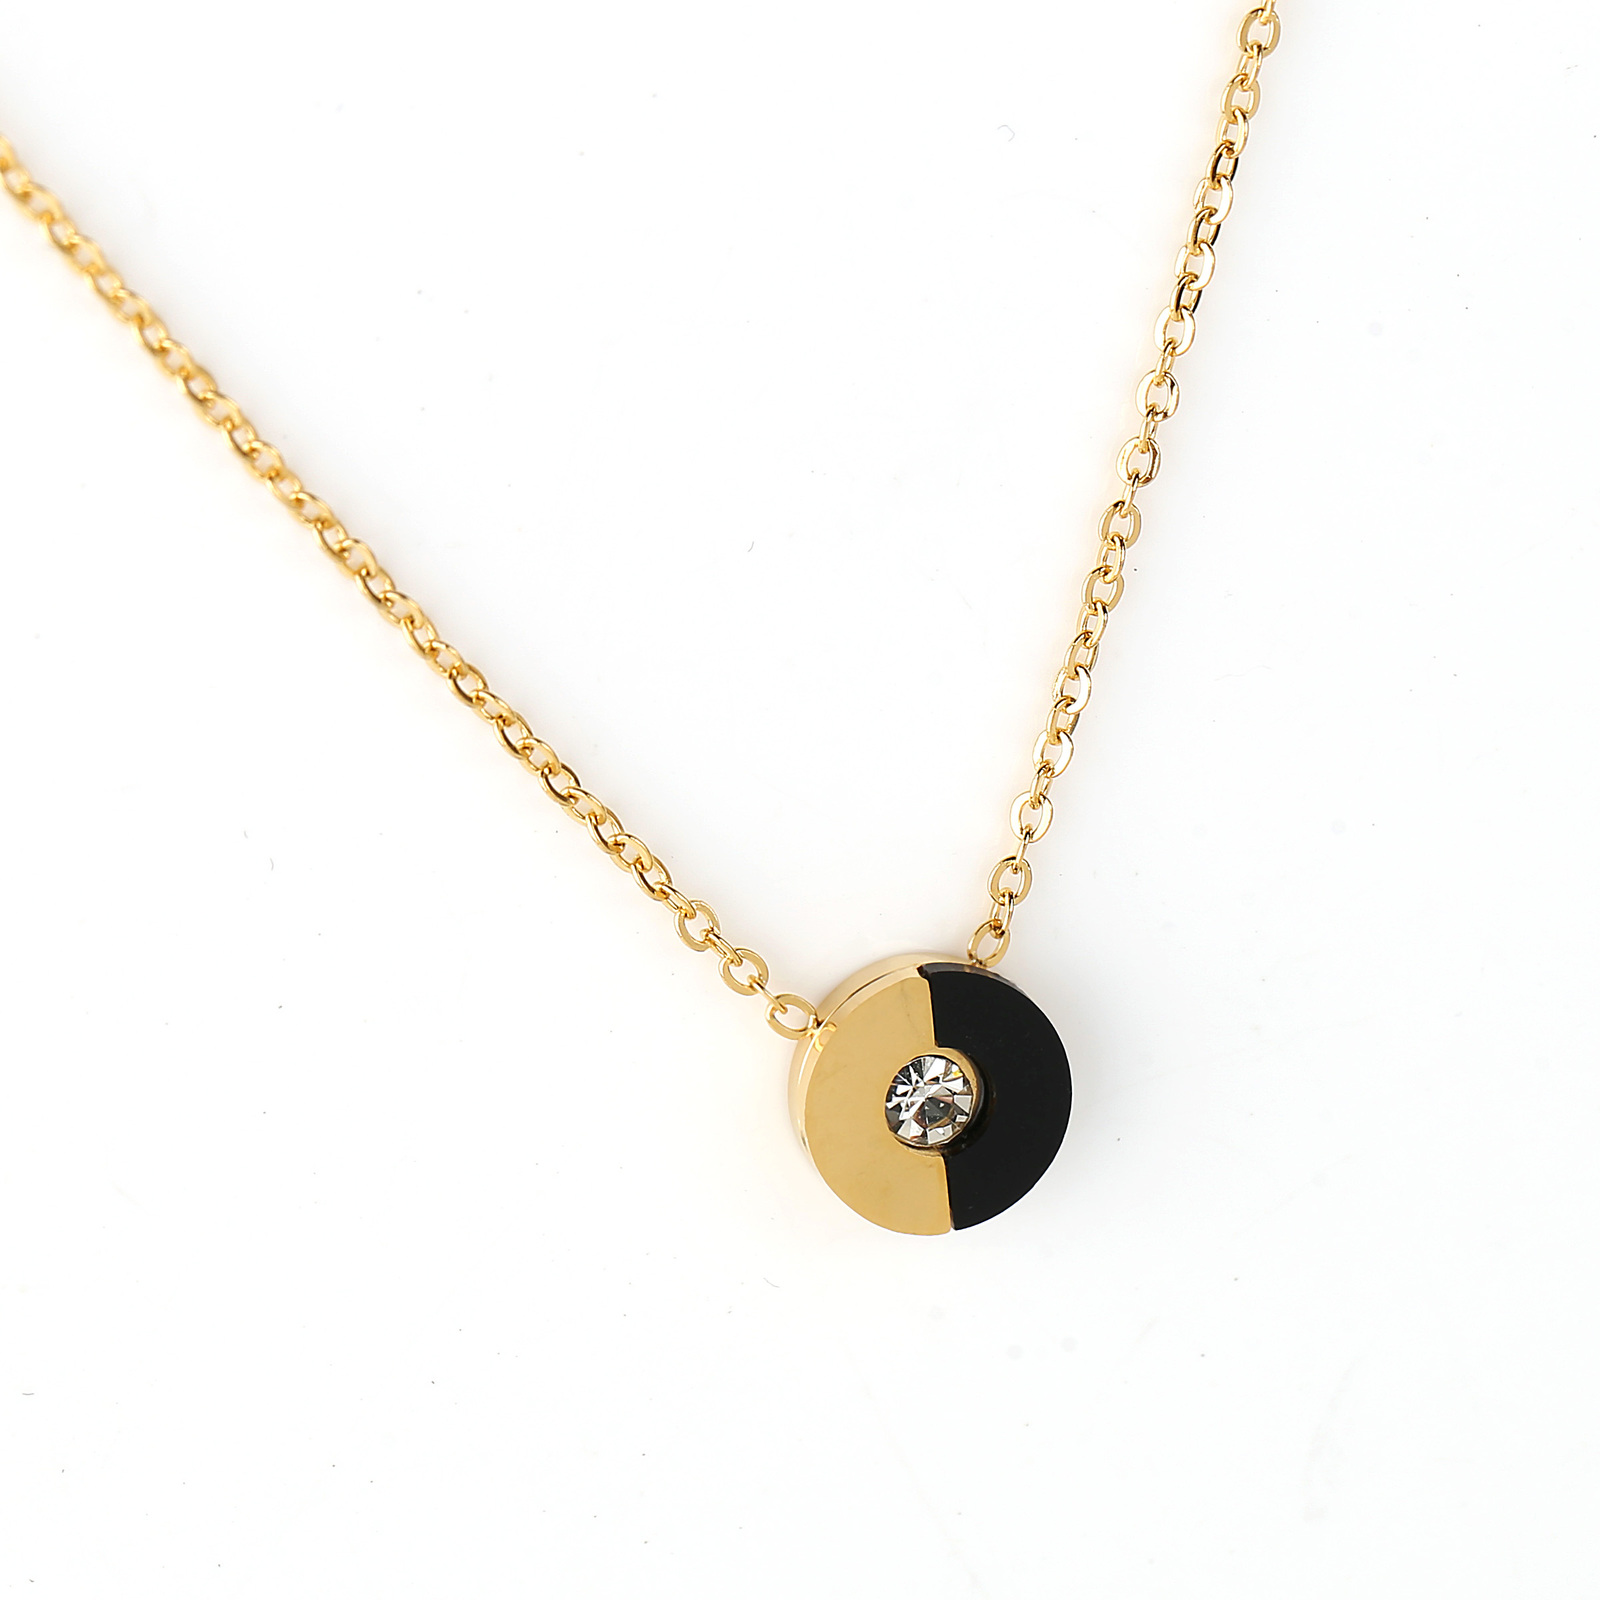 UE- Gold Tone & Jet Black Designer Pendant Necklace With Swarovski Style Crystal image 3